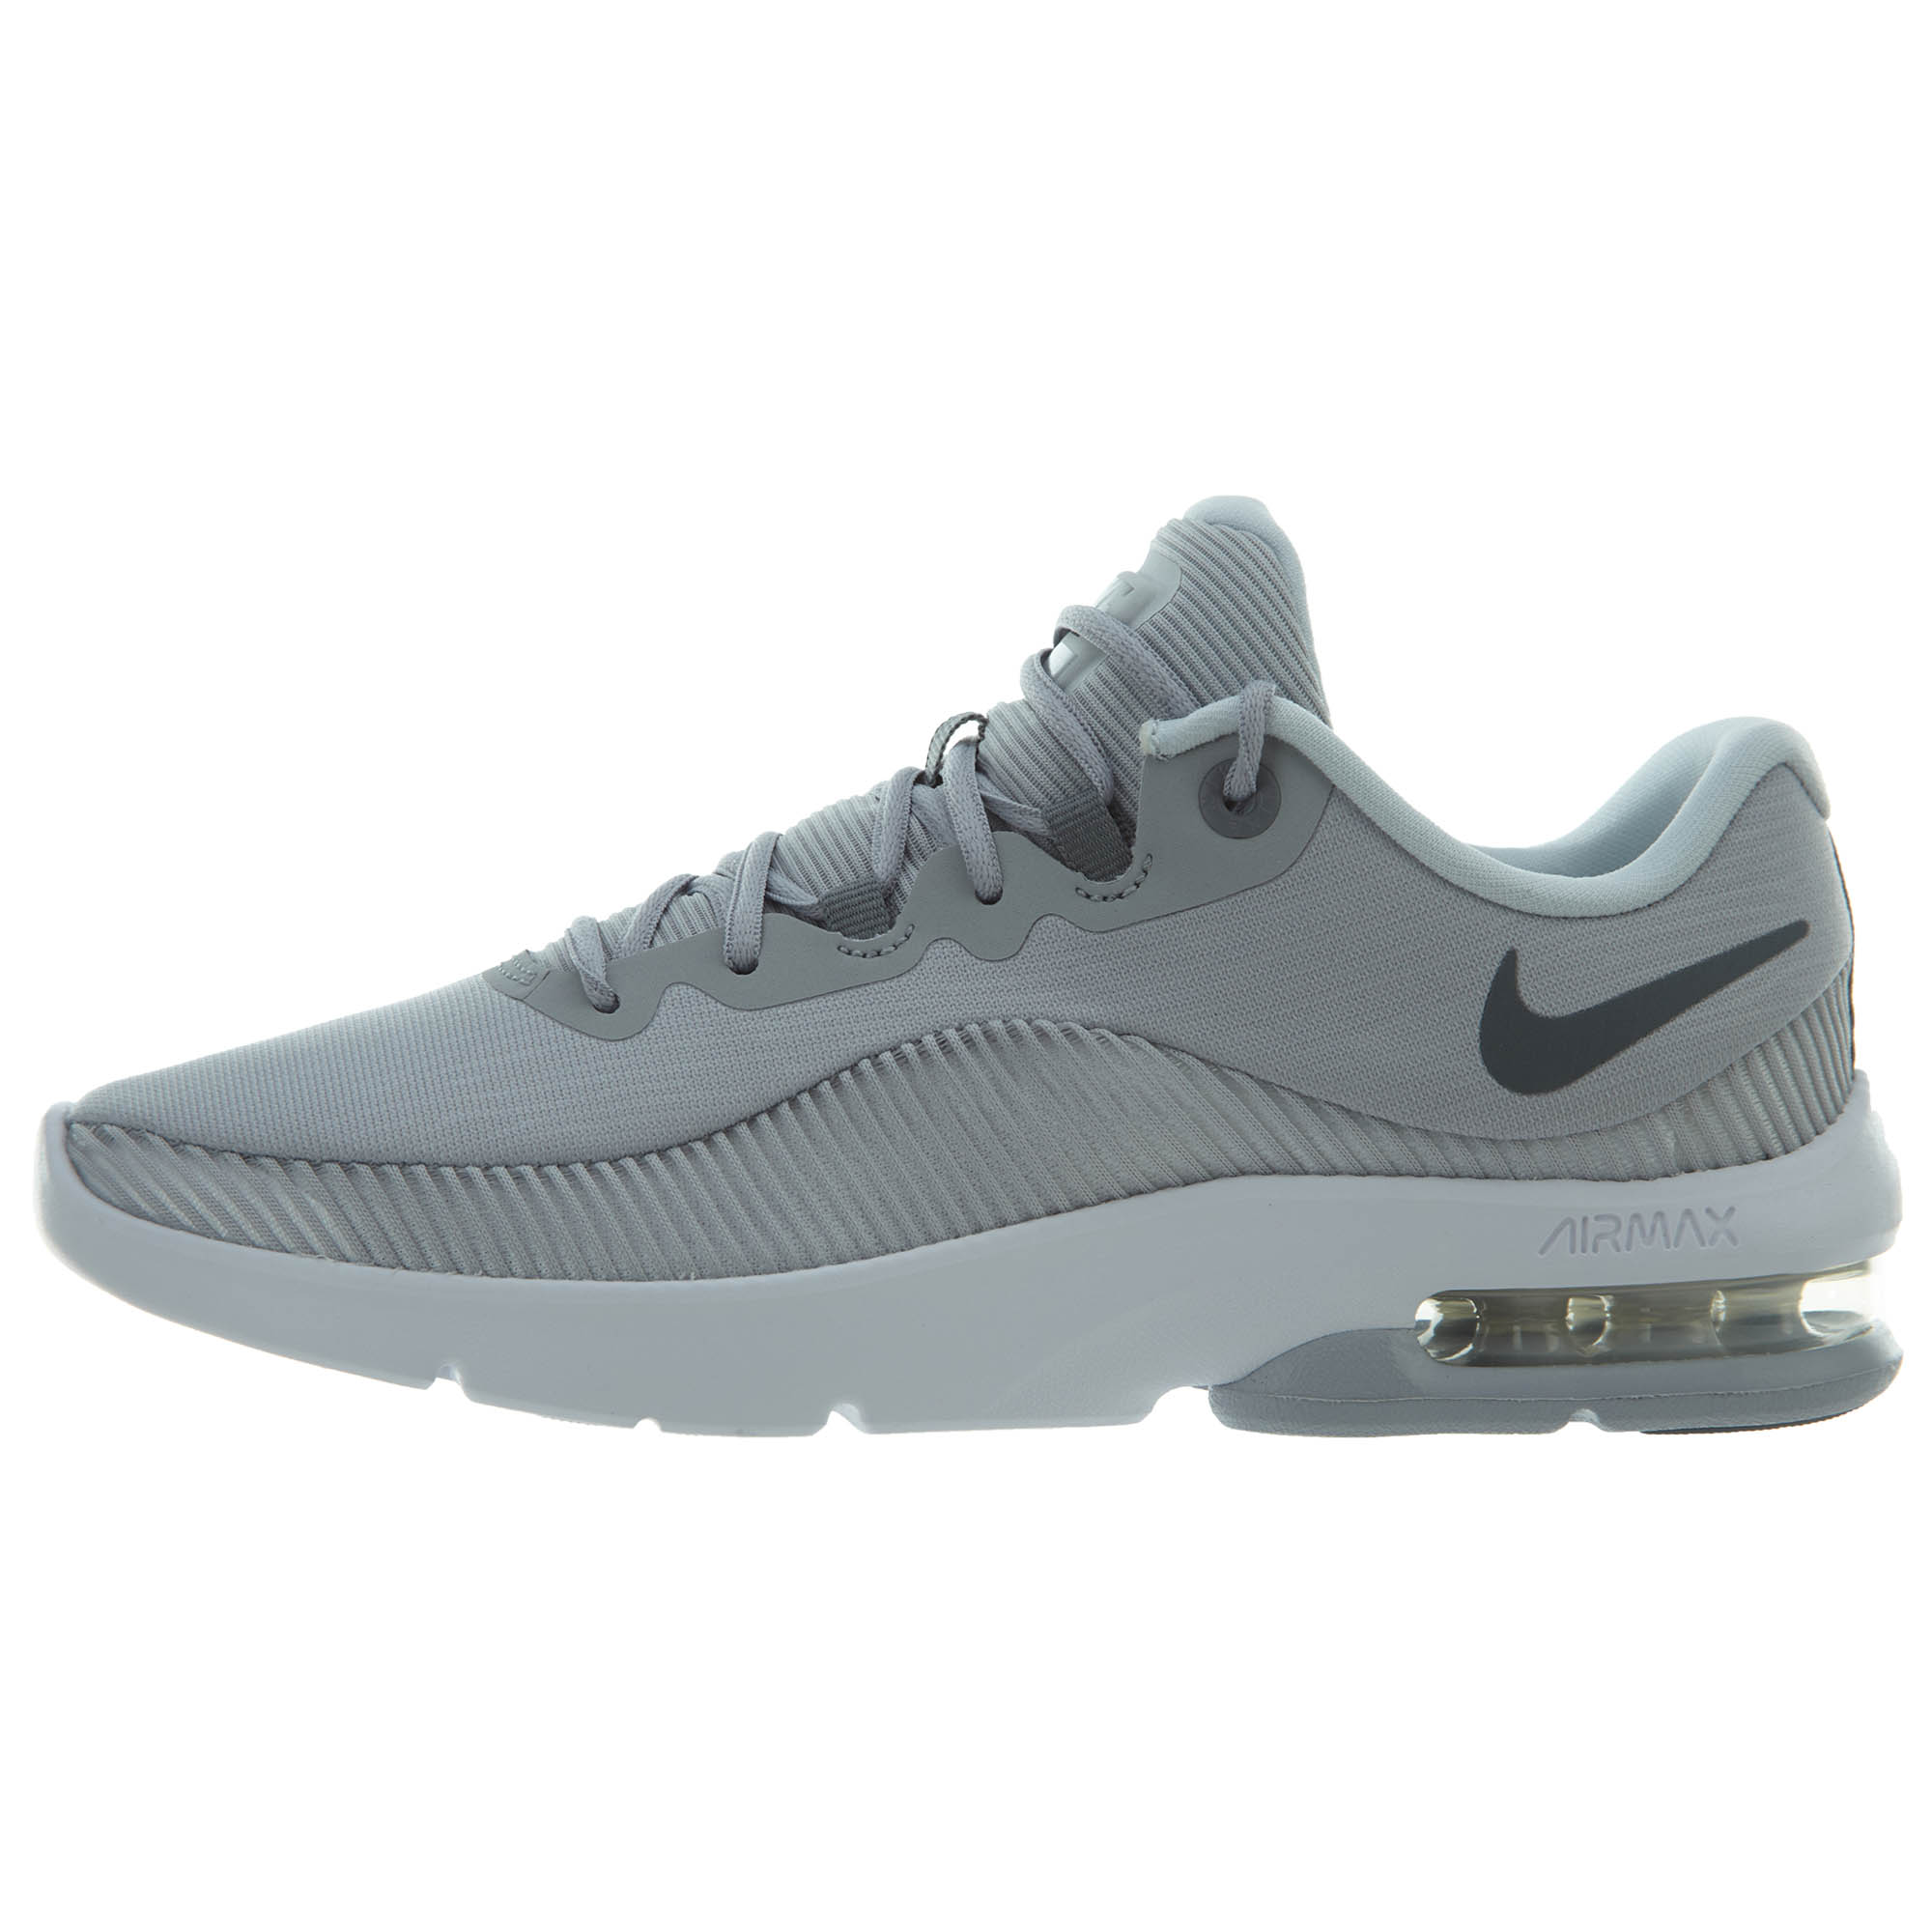 63496e15d5d Details about Nike Womens Air Max Advantage 2 Running Shoes AA7407-010